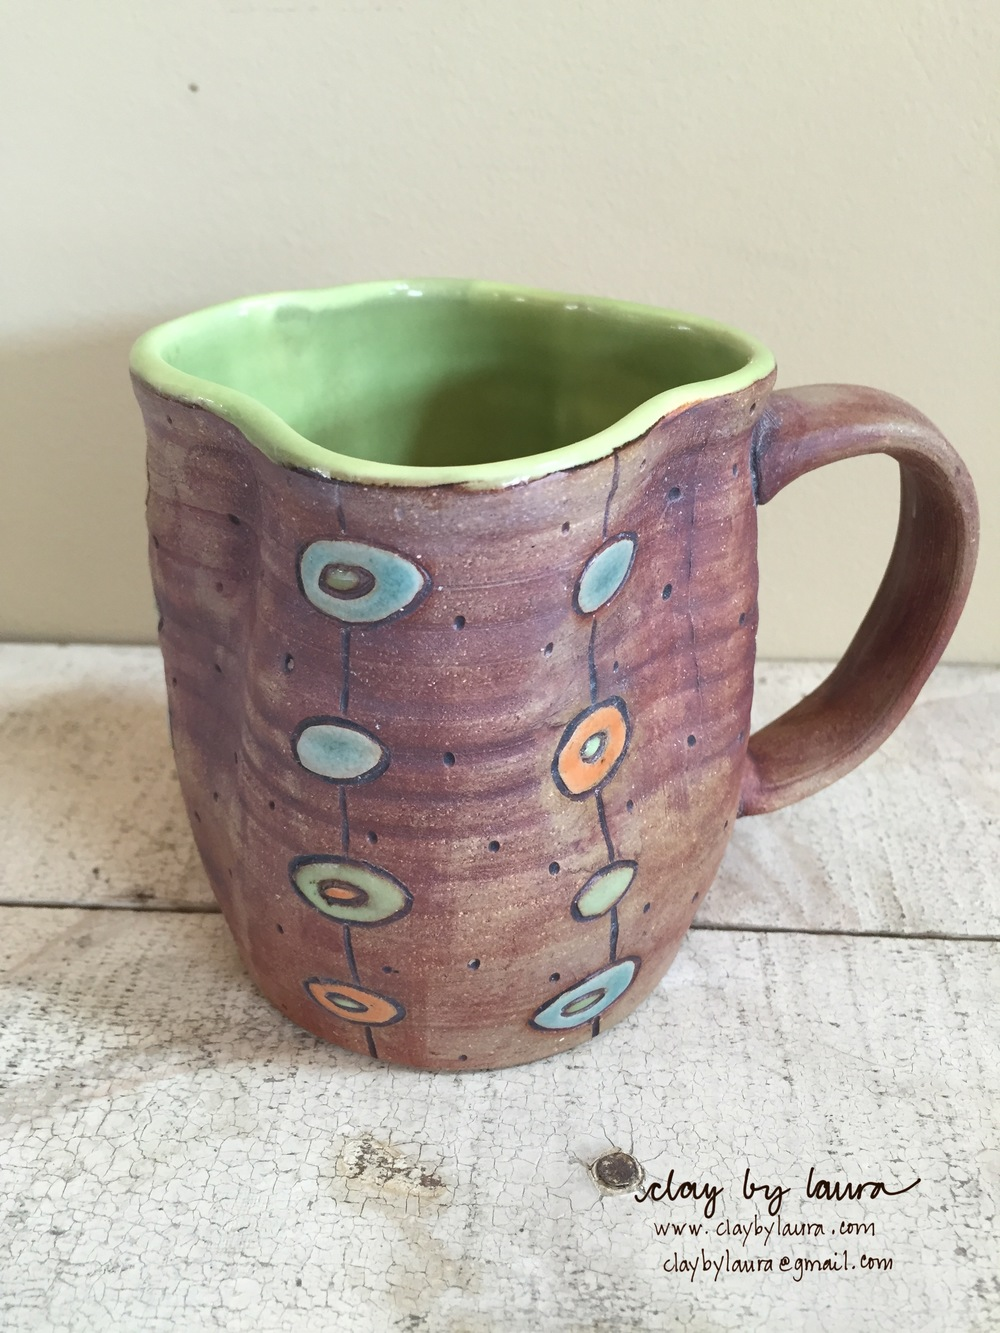 I bought this fun mug at a craft show from Sarah McCarthy. I just love its unique shape in addition to it's wonderful glaze technique. When I'm not using one of my own mugs, I reach for this one.